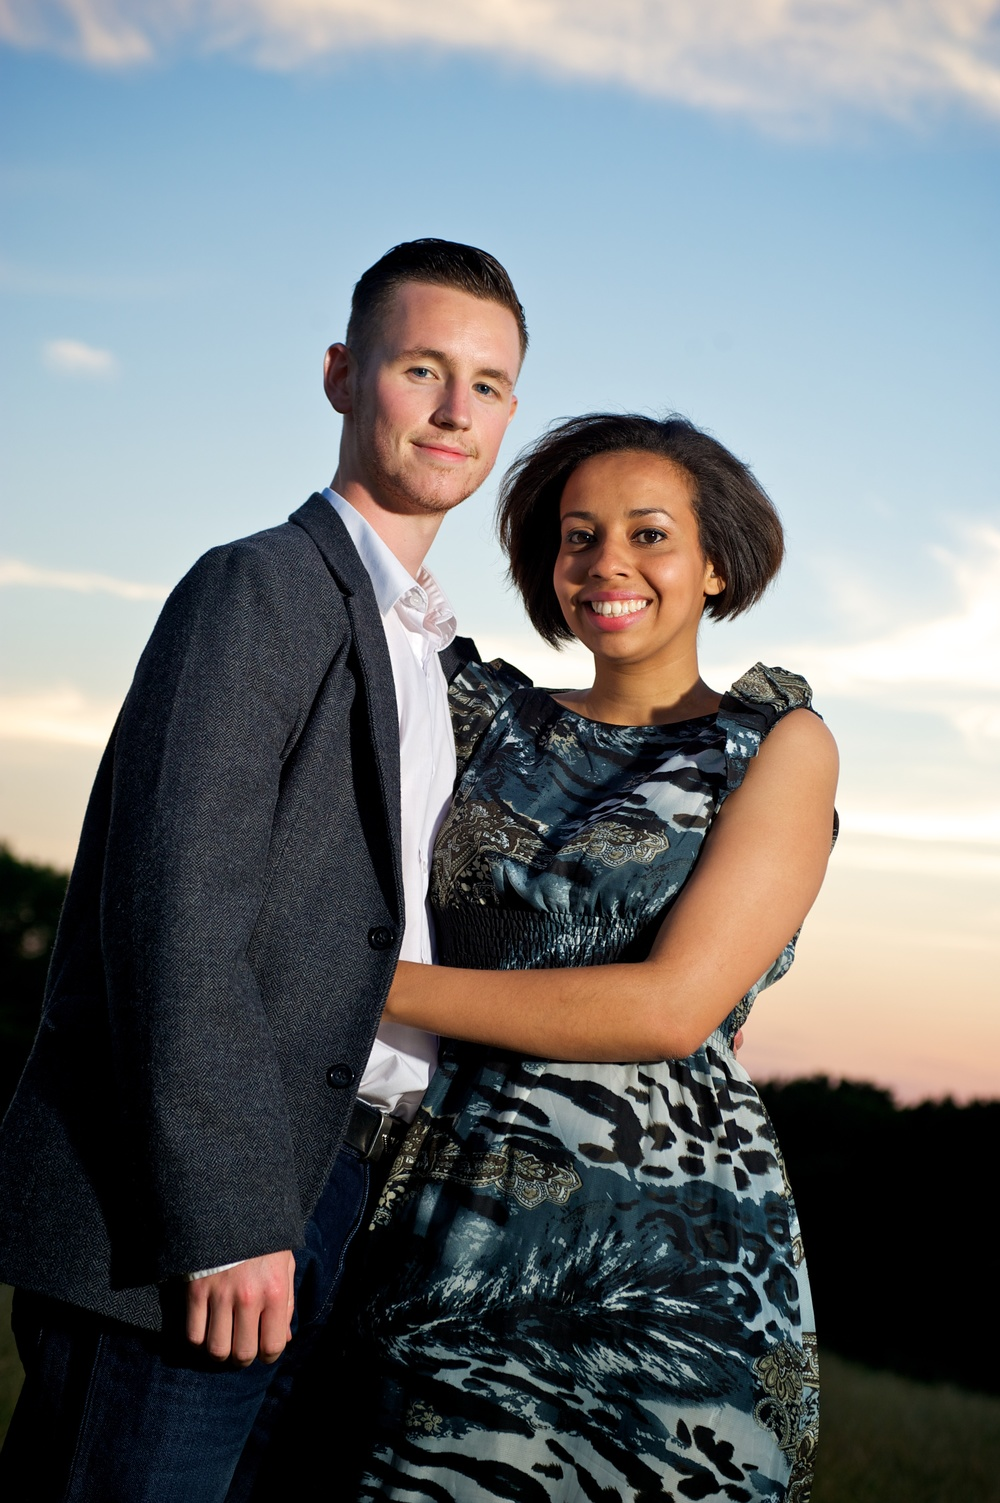 Dean & Dorling Engagement Shoot 114.jpg